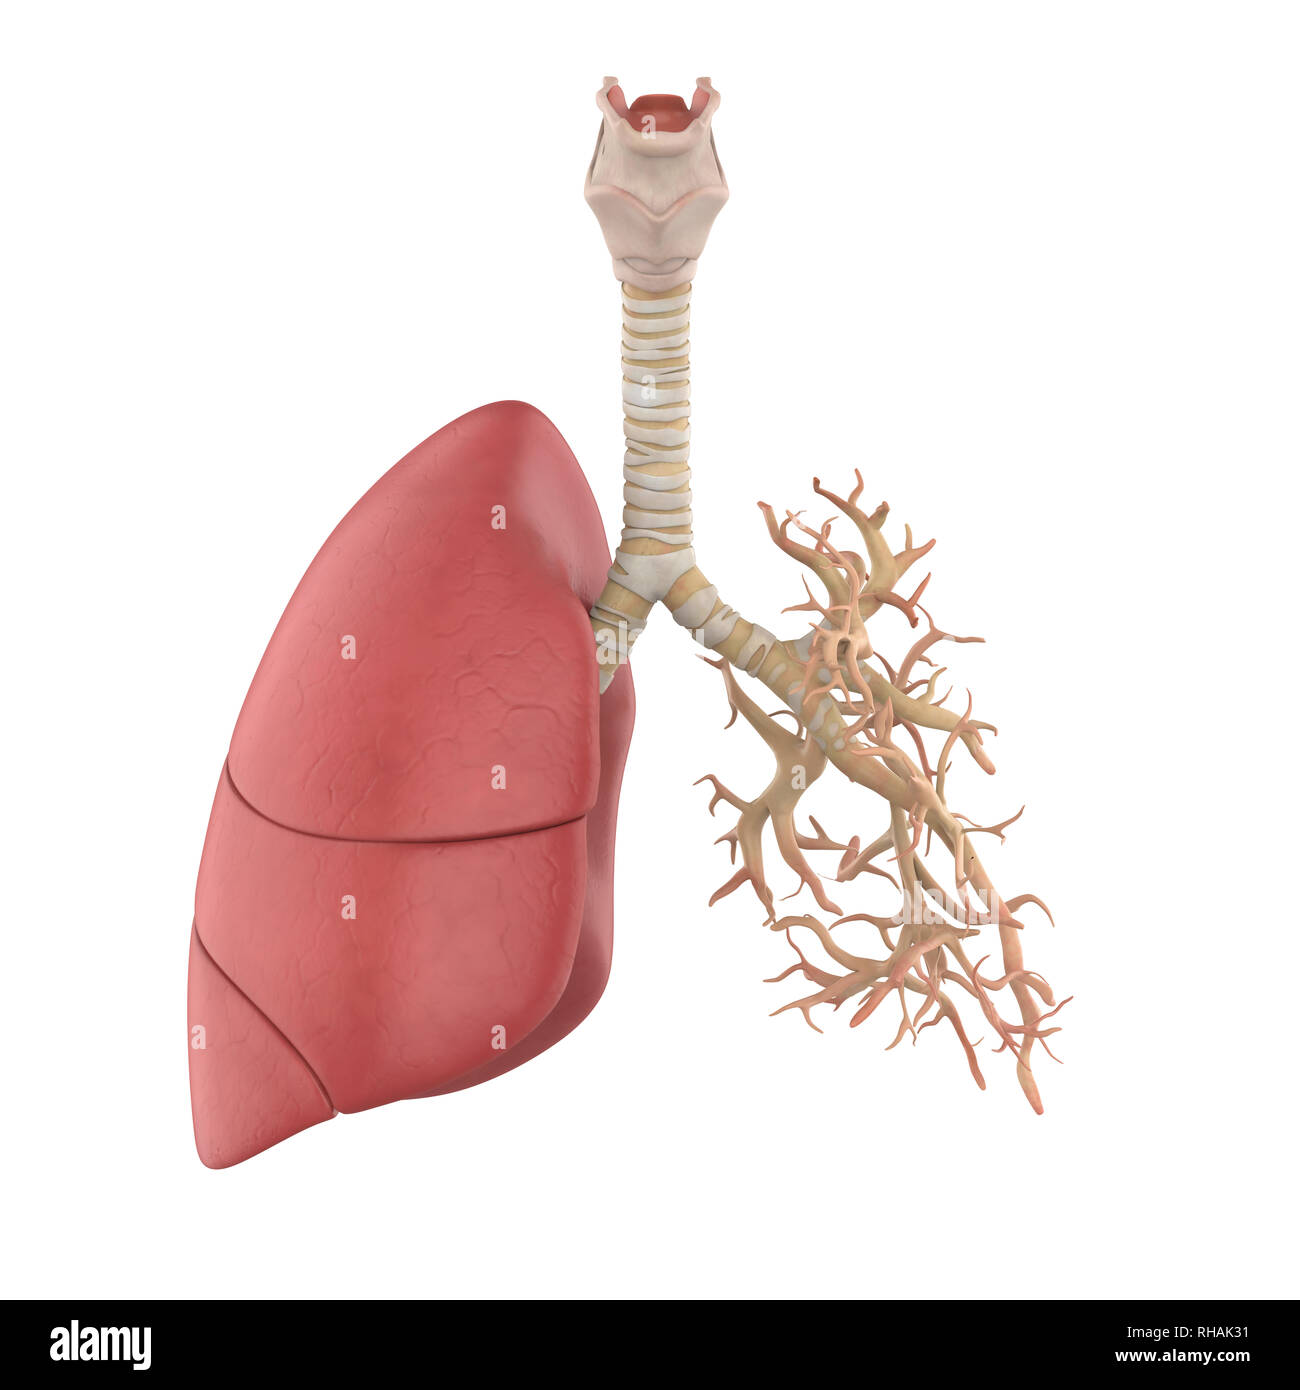 Human Lung Anatomy - Stock Image